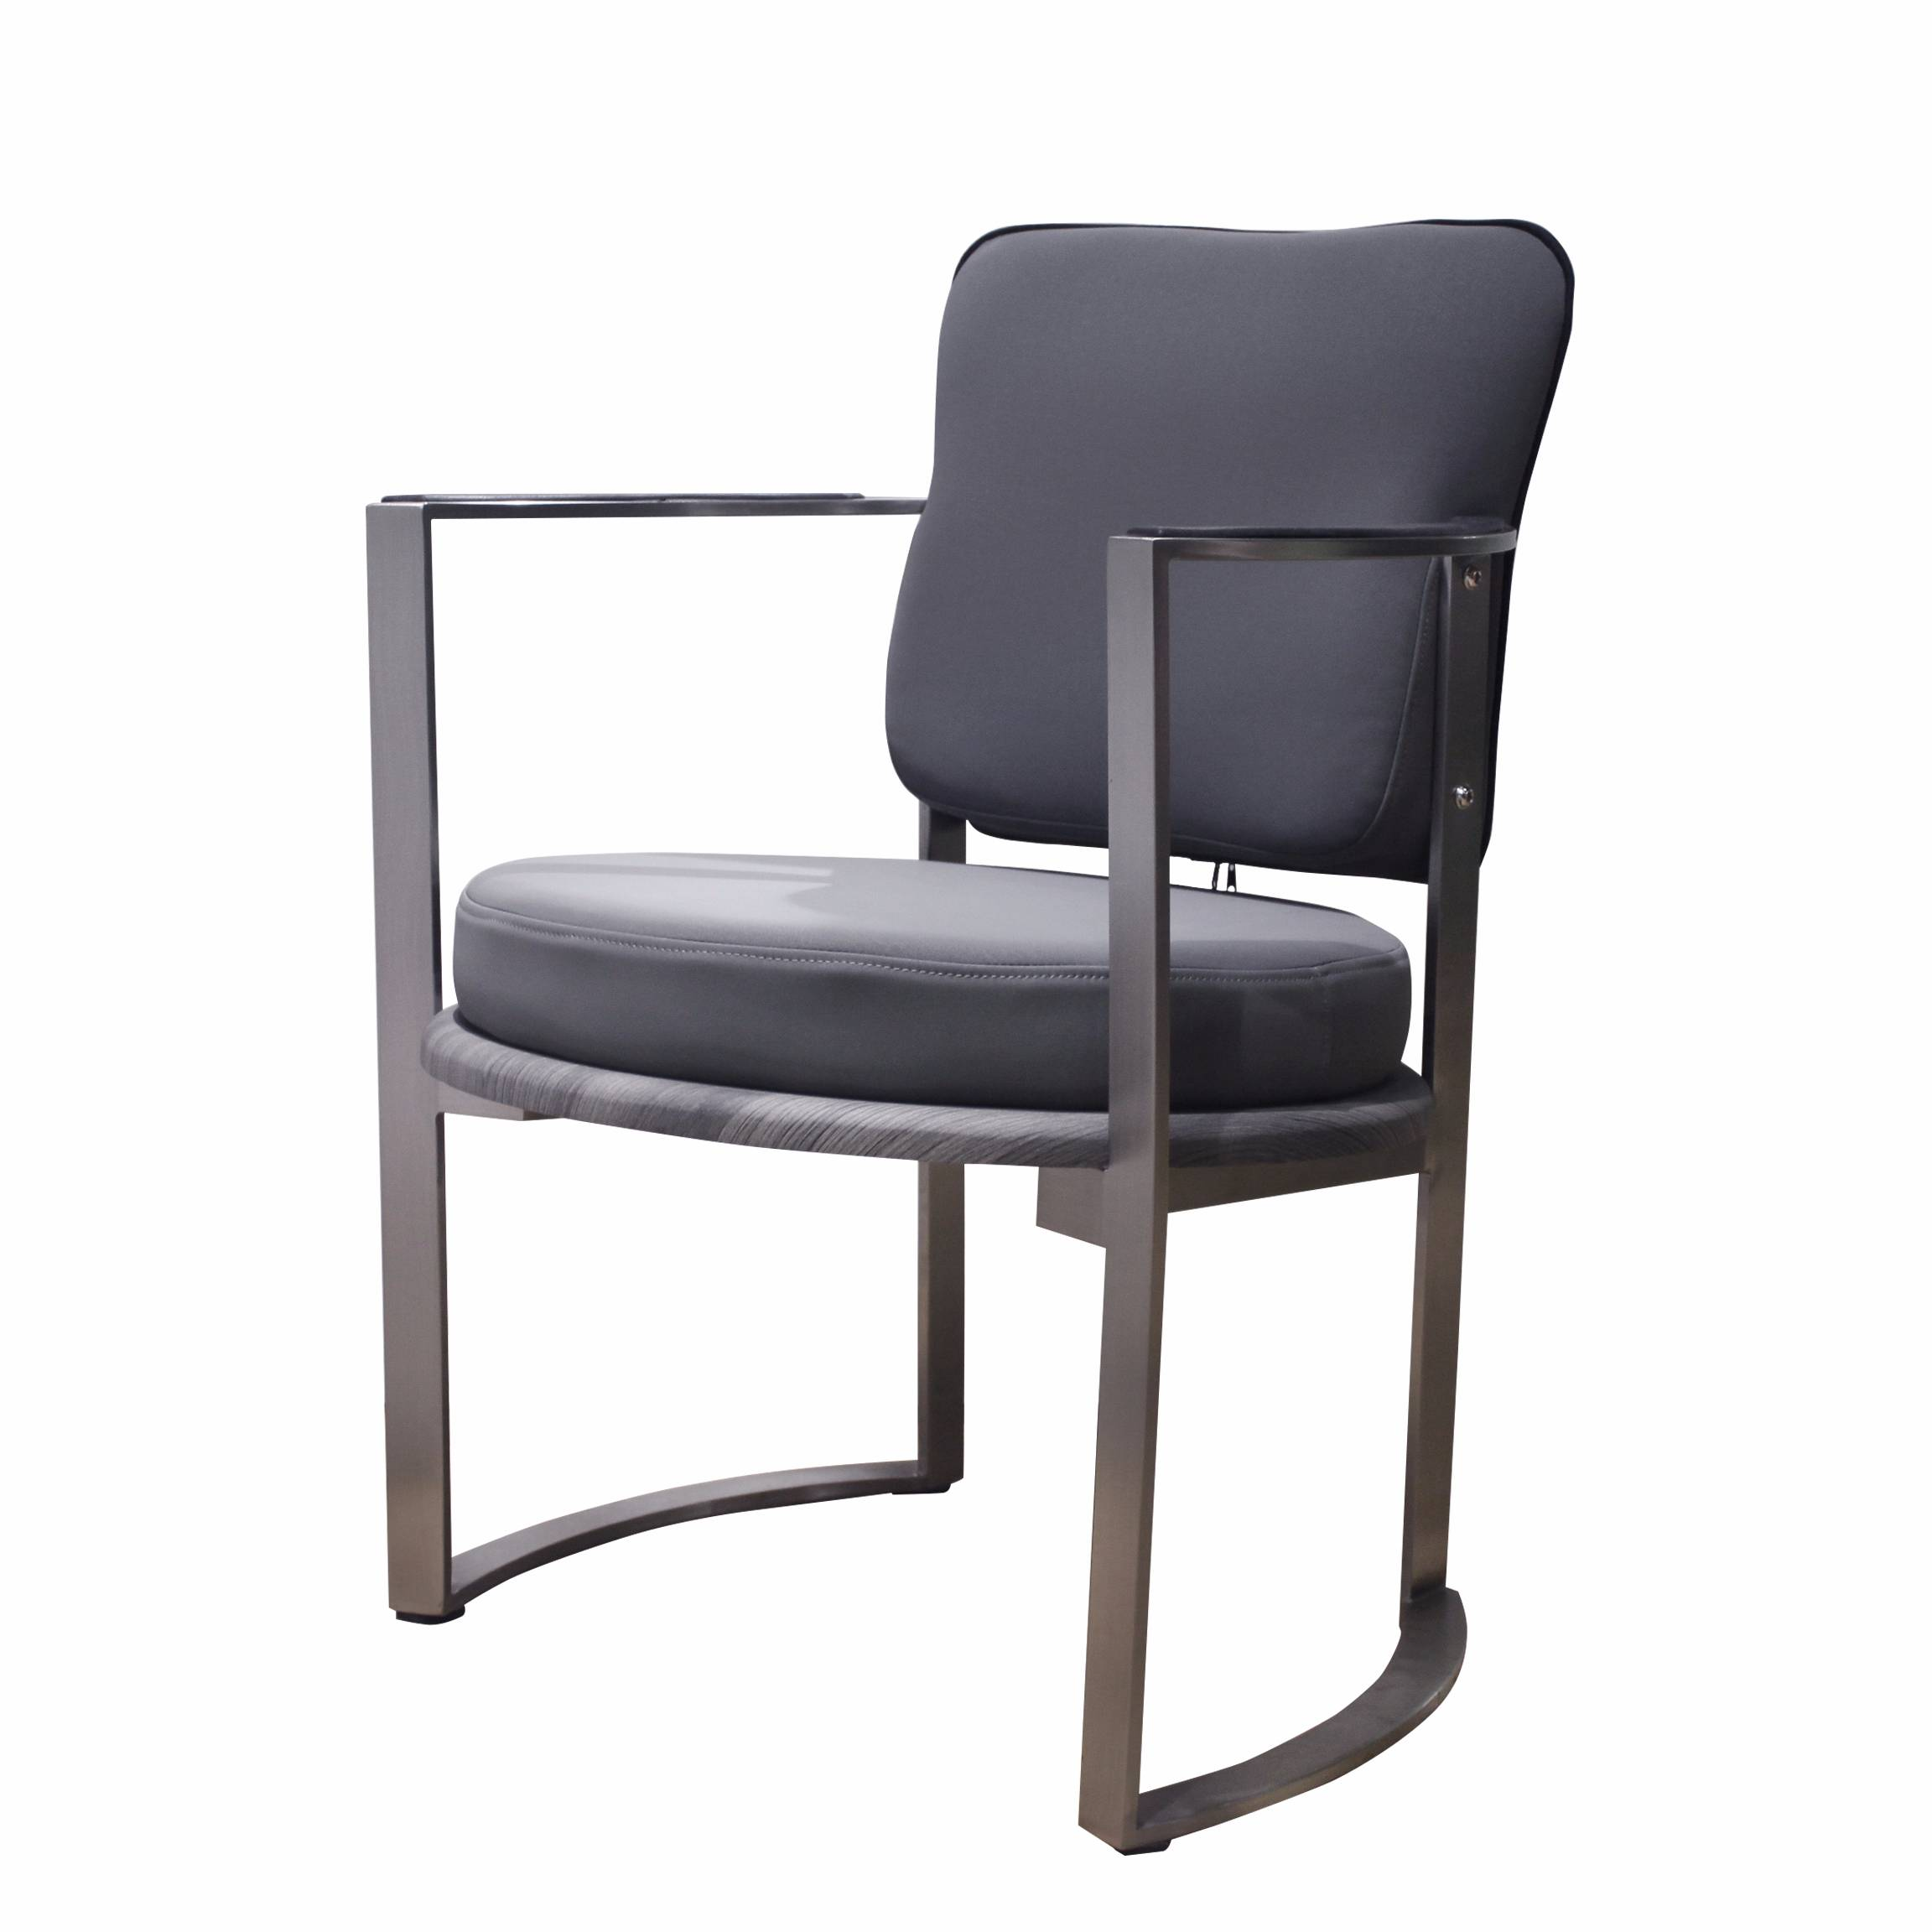 New model stainless steel frame  styling chair  for salon